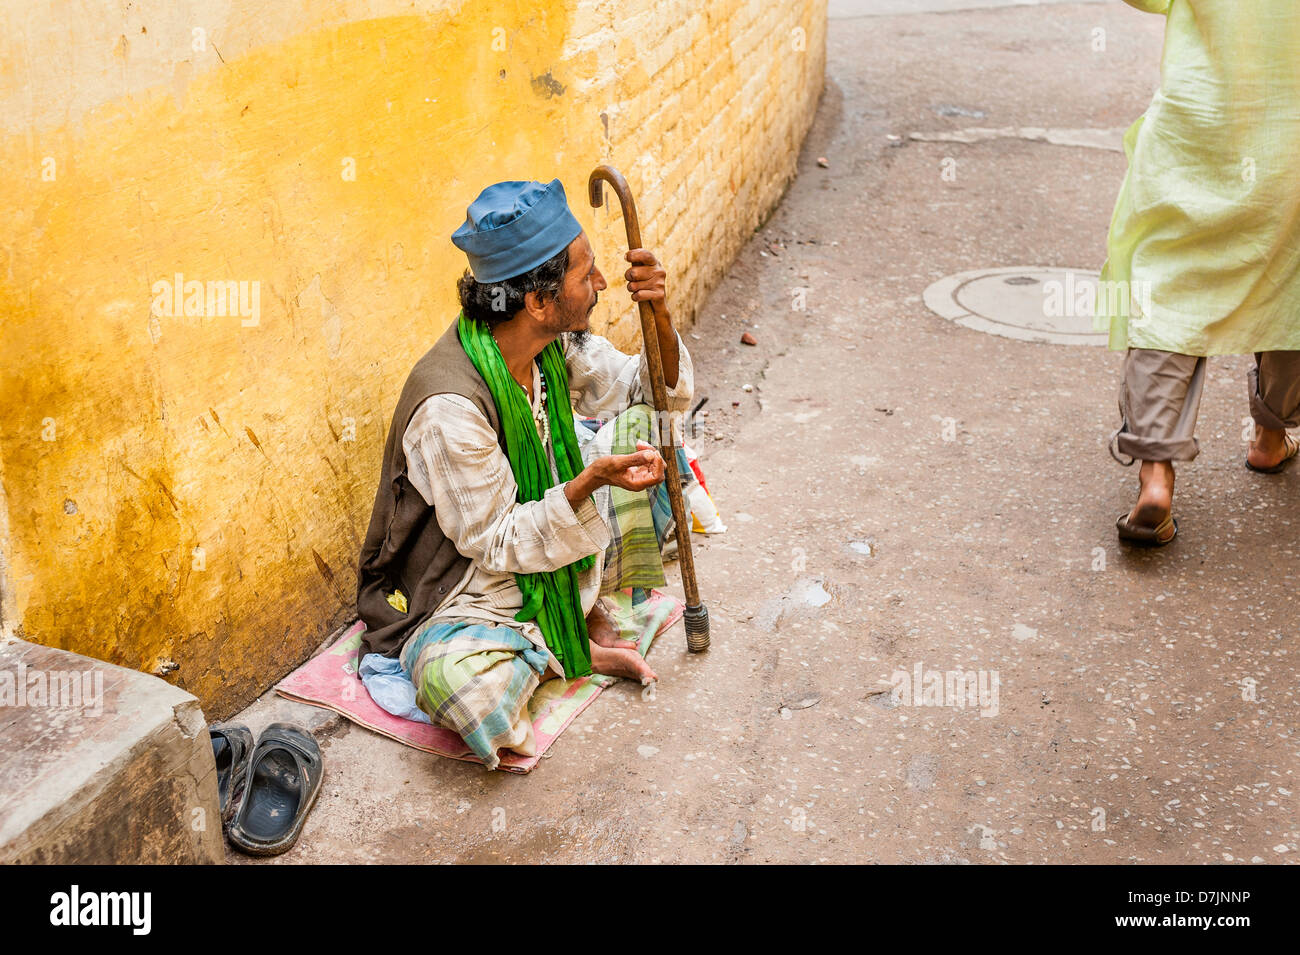 Beggar seeks alms on a narrow street in Nizamuddin, a Muslim suburb of Old Delhi, India. - Stock Image